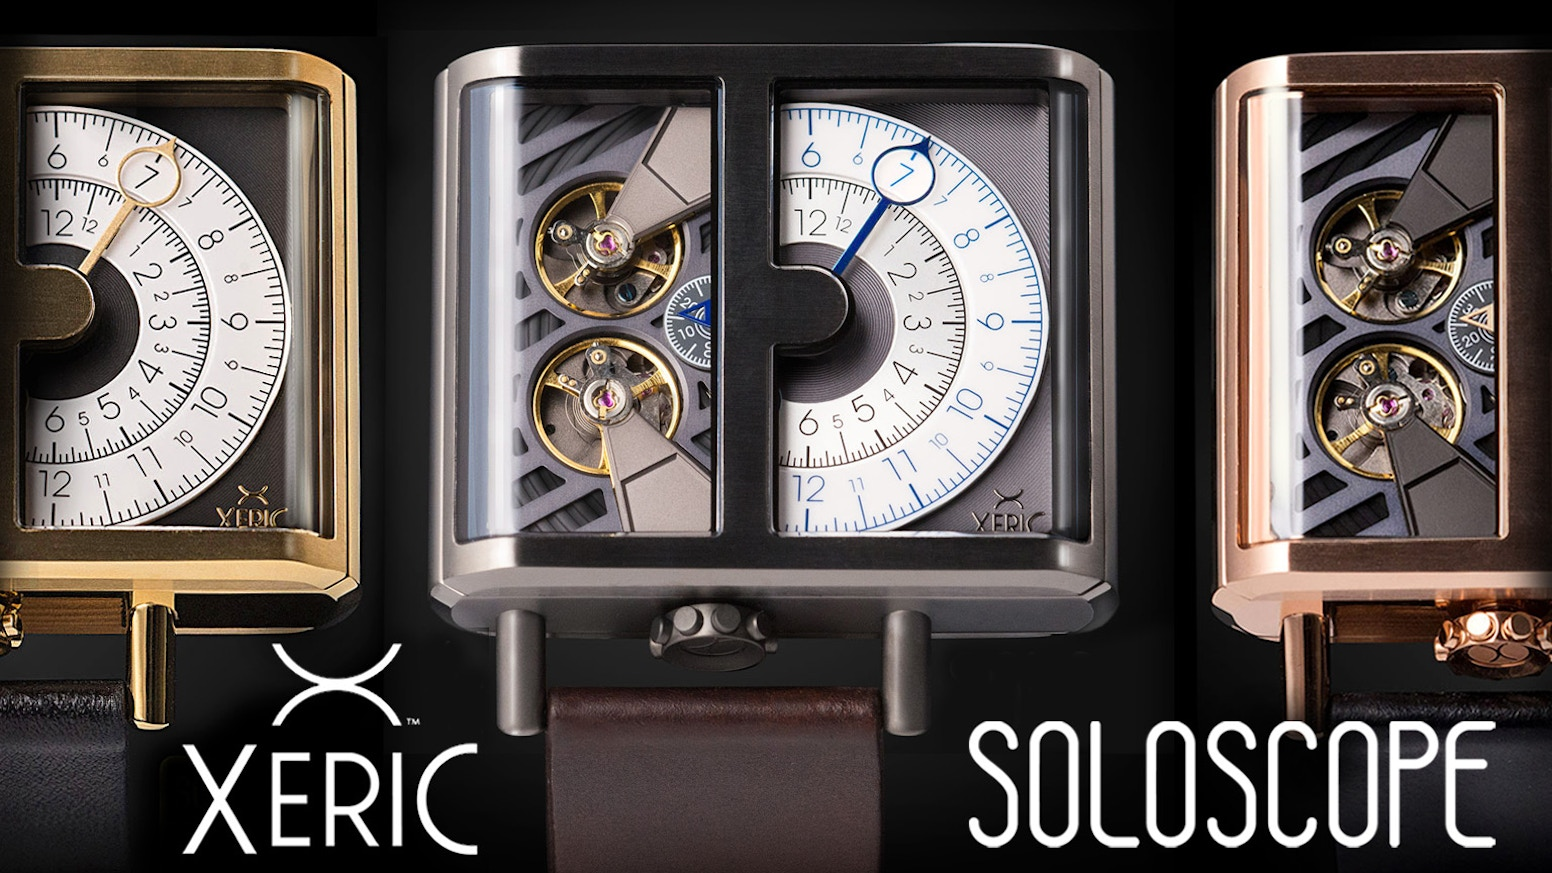 The latest & boldest design from XERIC, maker of unusual & affordable mechanical watches.